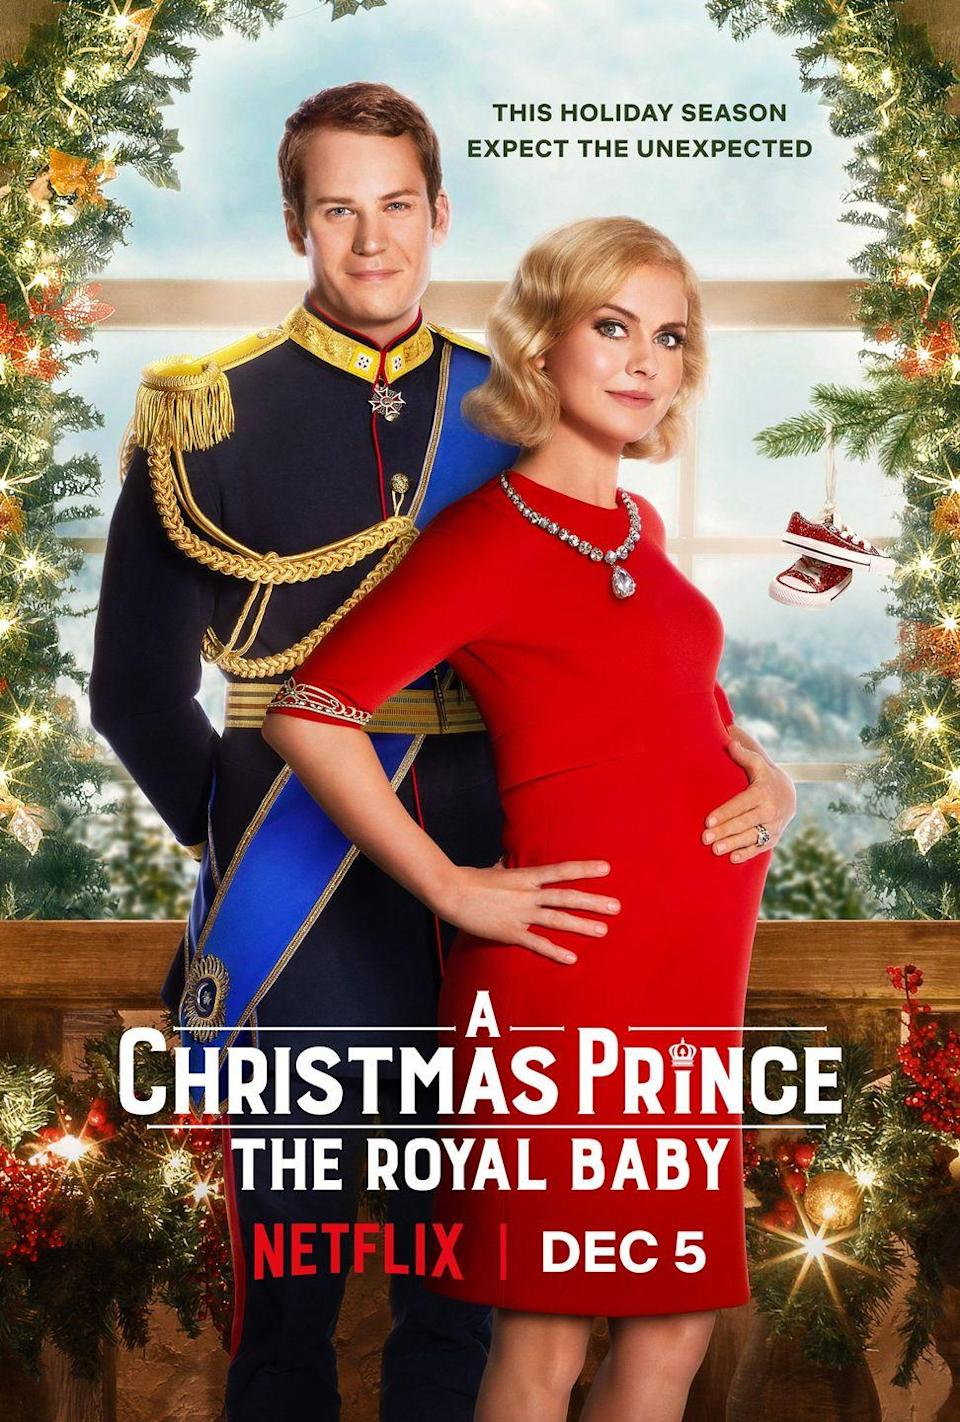 """<p>Still want more Aldovia? Netflix heard your pleas, and oh, have they answered. In <em>A</em> <em>Christmas Prince 3: The Royal Baby</em>, now Queen Amber and King Richard are getting ready to welcome the next heir to the throne, but things are about to get a little dicey (as they tend to do in the country right before Christmas). </p><p>When King Tai and Queen Ming visit to renew a sacred truce, and the treaty suddenly goes missing, Amber, Richard and Princess Emily only have until Christmas Eve to find it.</p><p><a class=""""link rapid-noclick-resp"""" href=""""https://www.netflix.com/title/81029841"""" rel=""""nofollow noopener"""" target=""""_blank"""" data-ylk=""""slk:Watch Now"""">Watch Now</a></p>"""